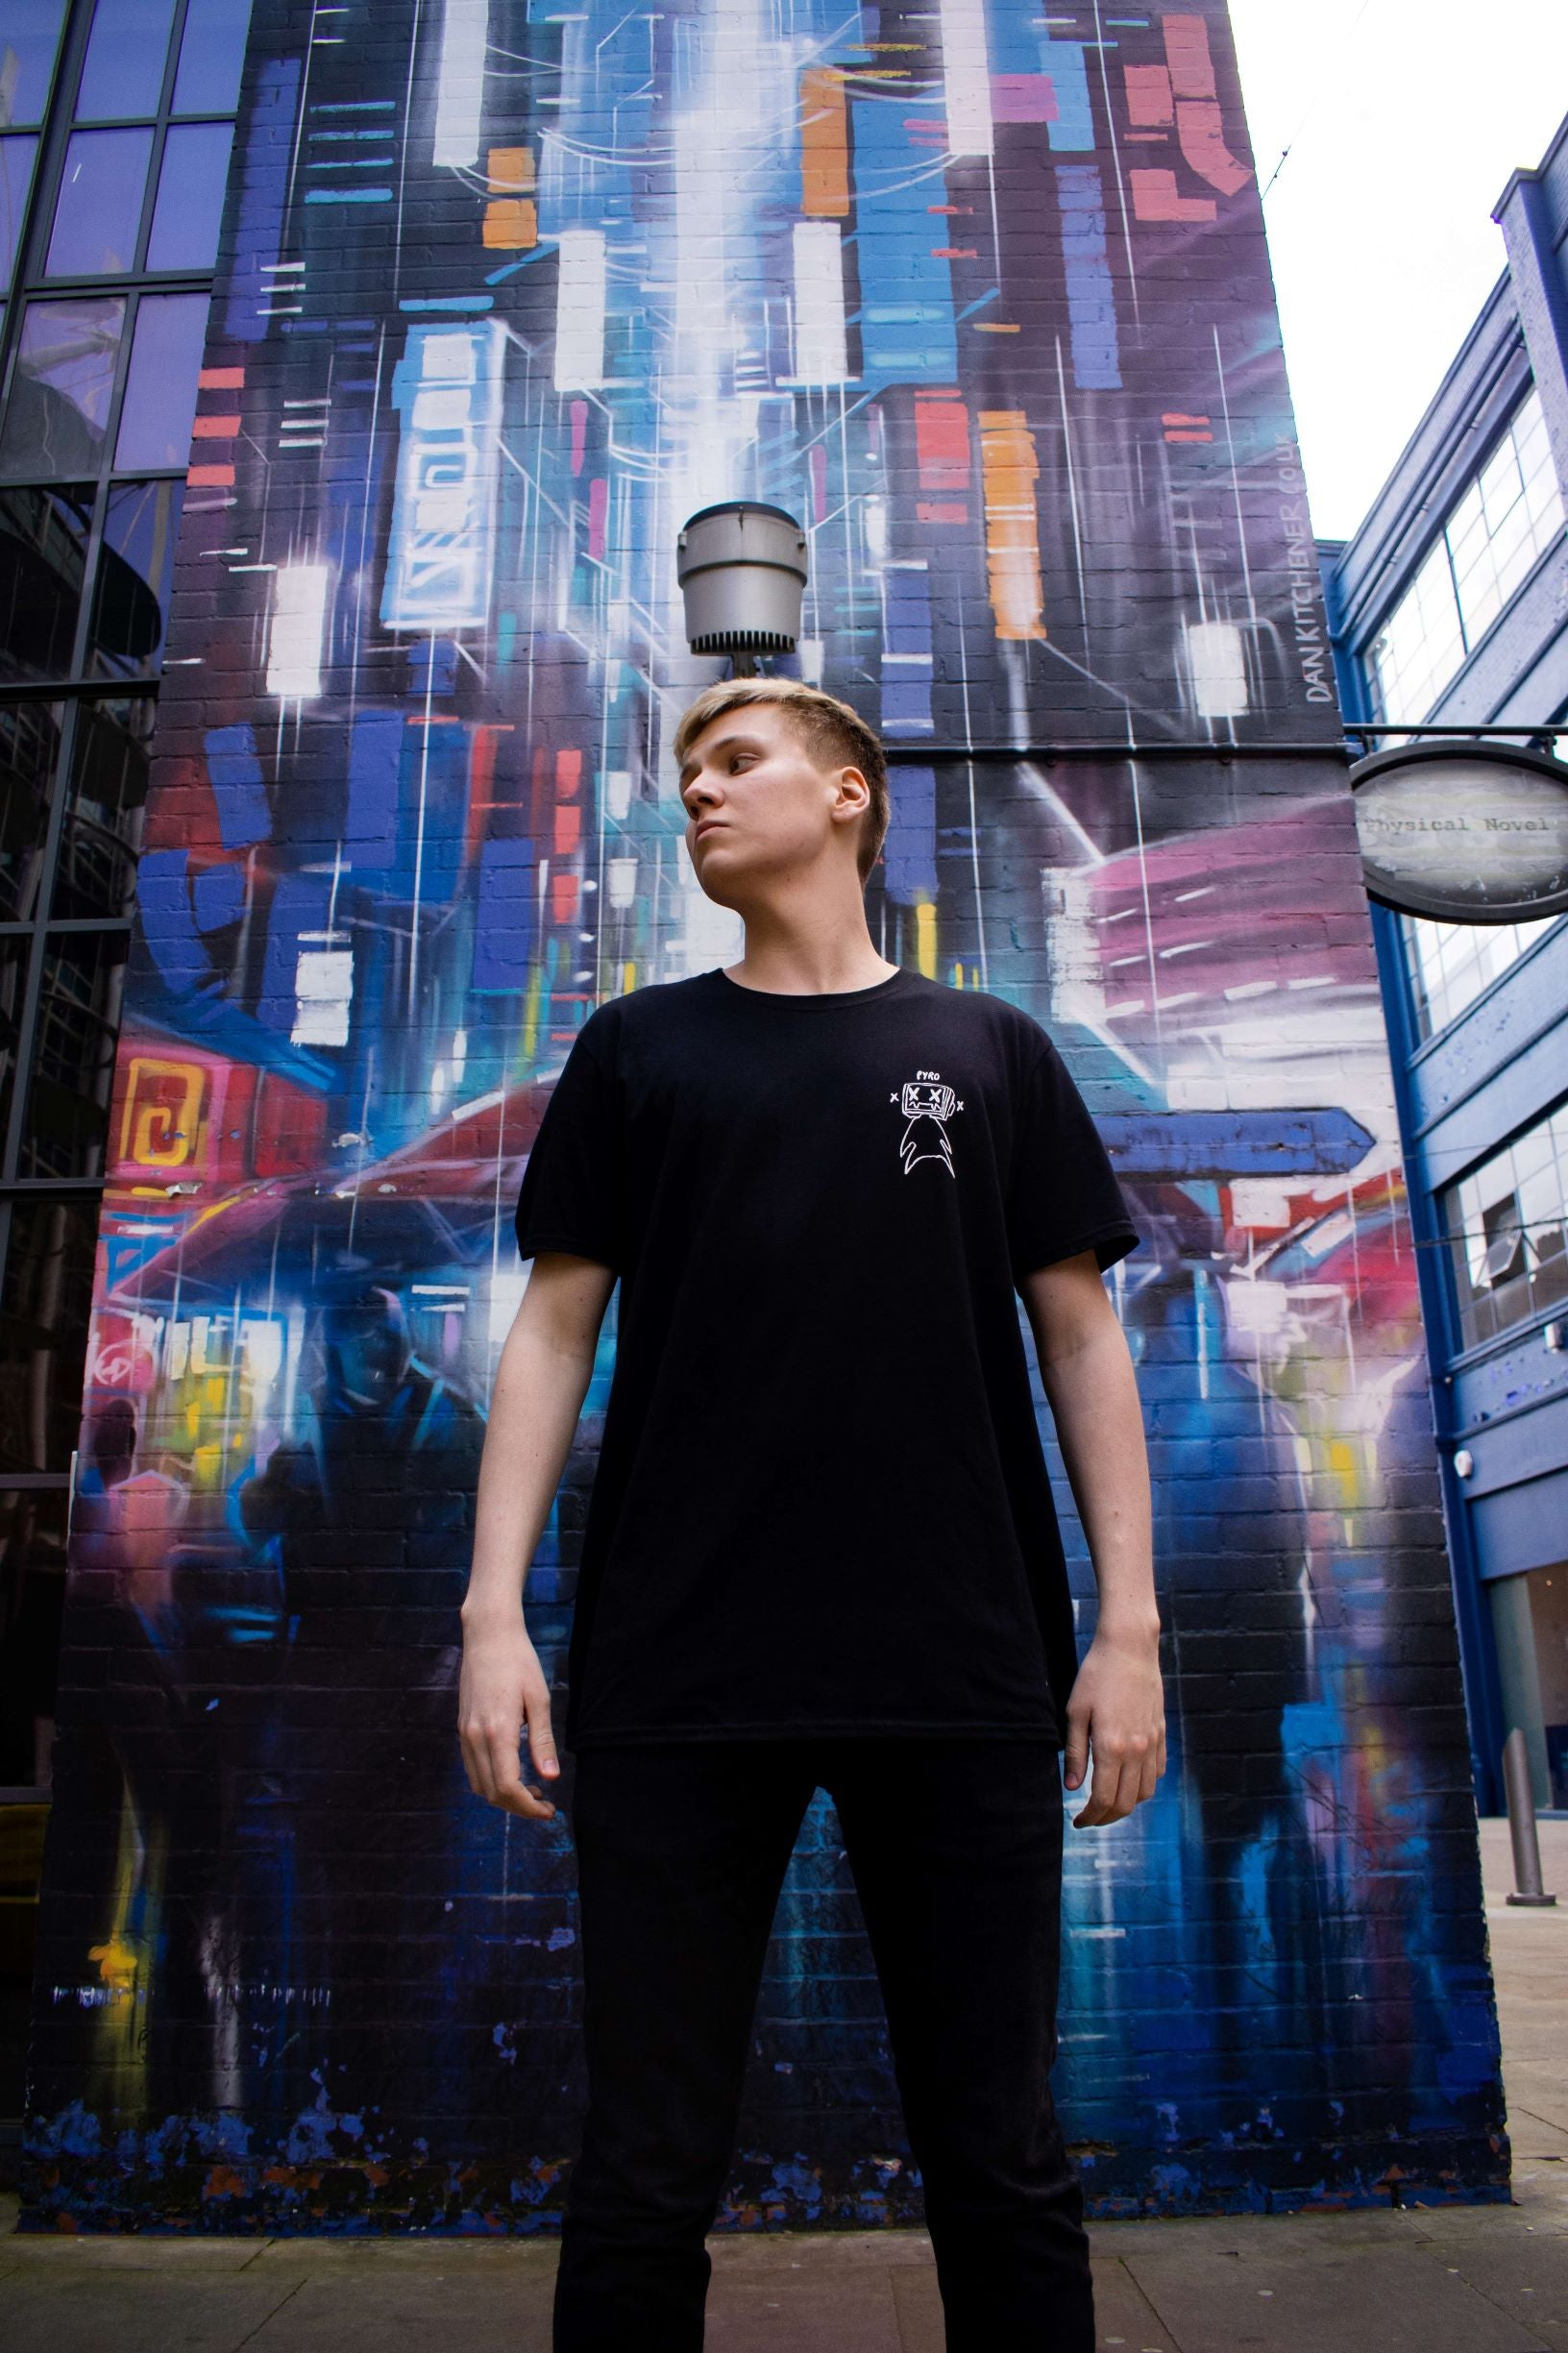 Pyrocynical double print black tee shirt